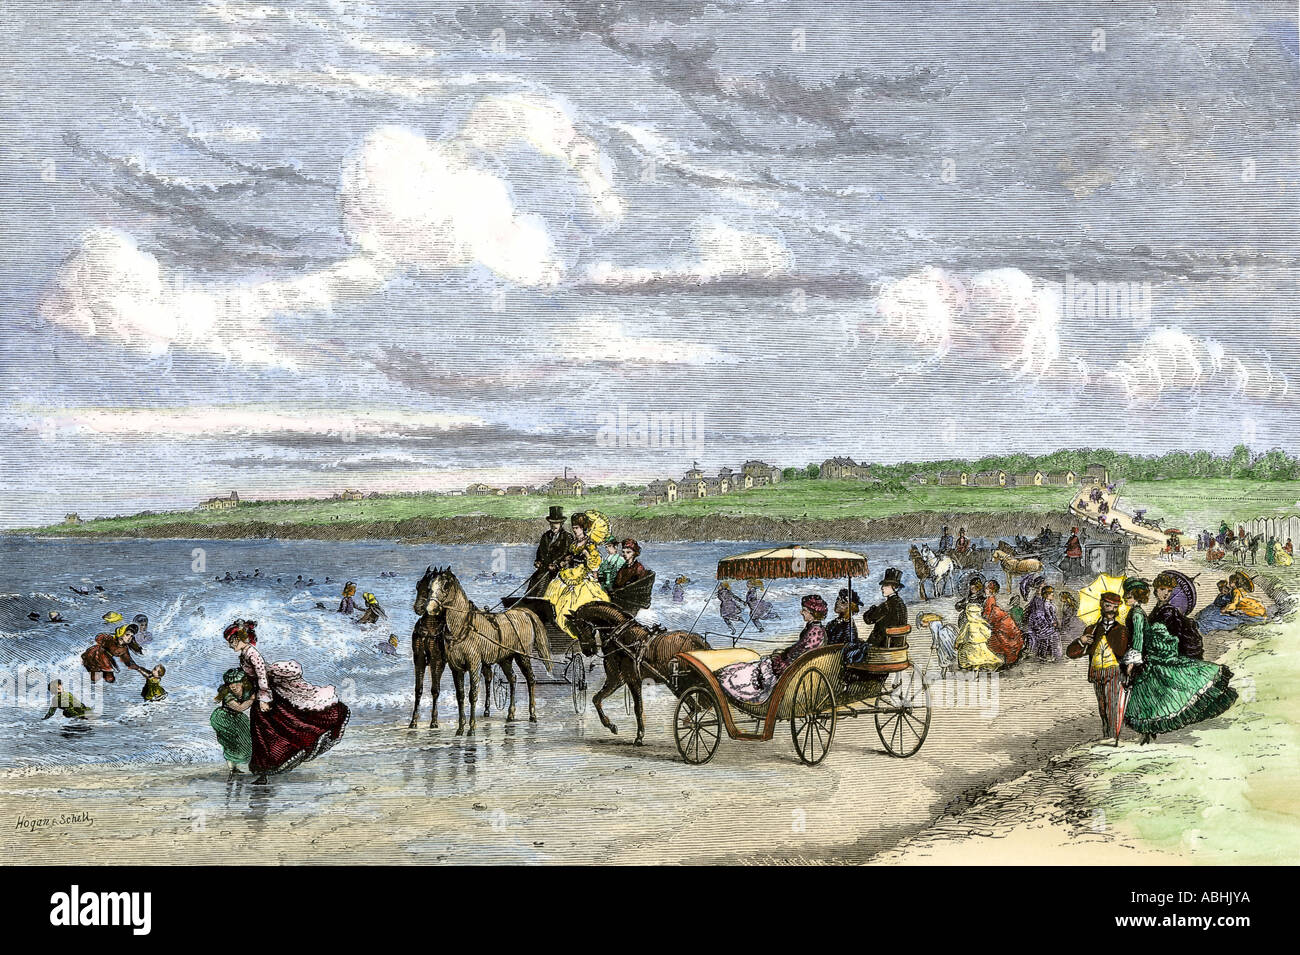 Summer vacationers on the beach in Newport Rhode Island 1870s. Hand-colored woodcut - Stock Image